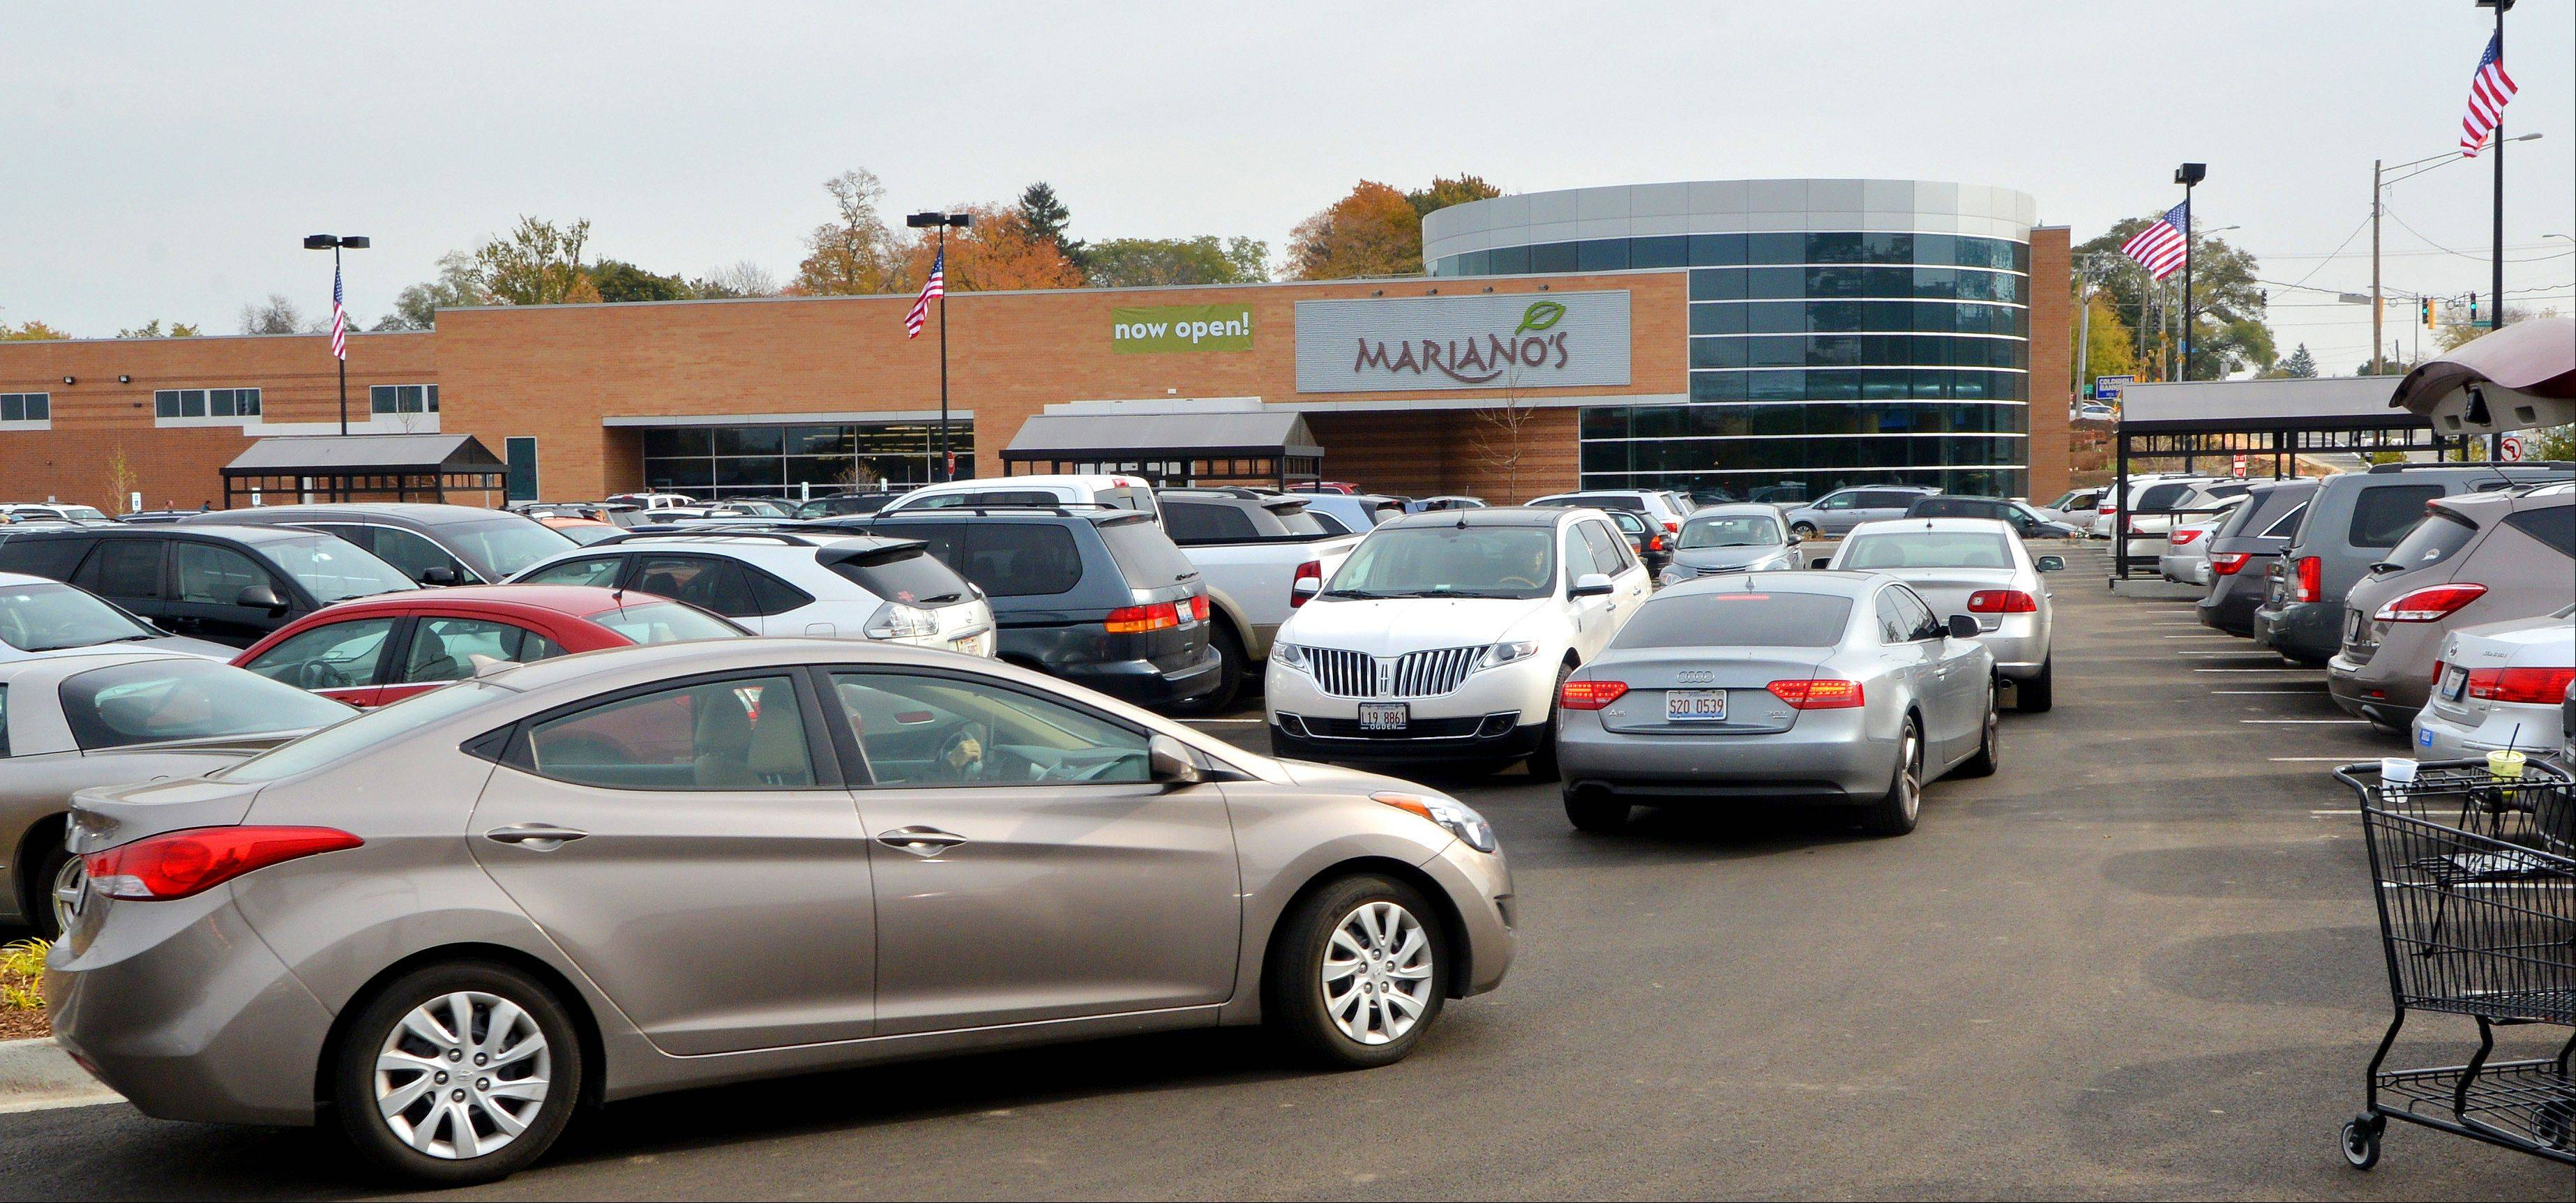 Large crowds packed the Mariano�s Fresh Market in Wheaton Tuesday as the store opened for the first time. Both the parking lot adjacent the store and the spillover lot across Main Street were completely filled during the midmorning hours.